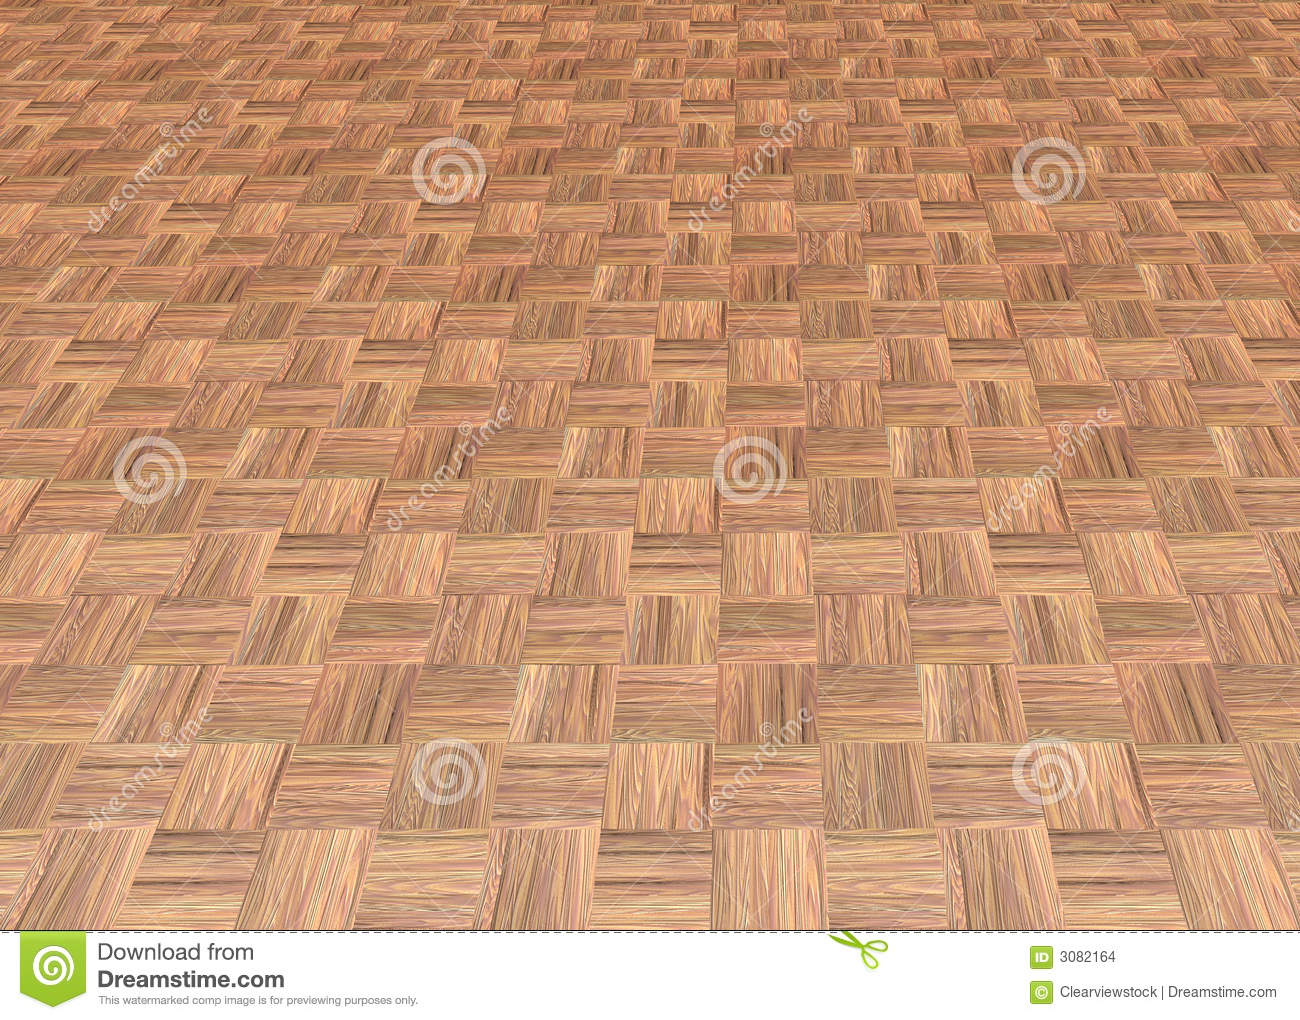 Download Wood Laminate Floor Tiles Stock Illustration Of Abstract